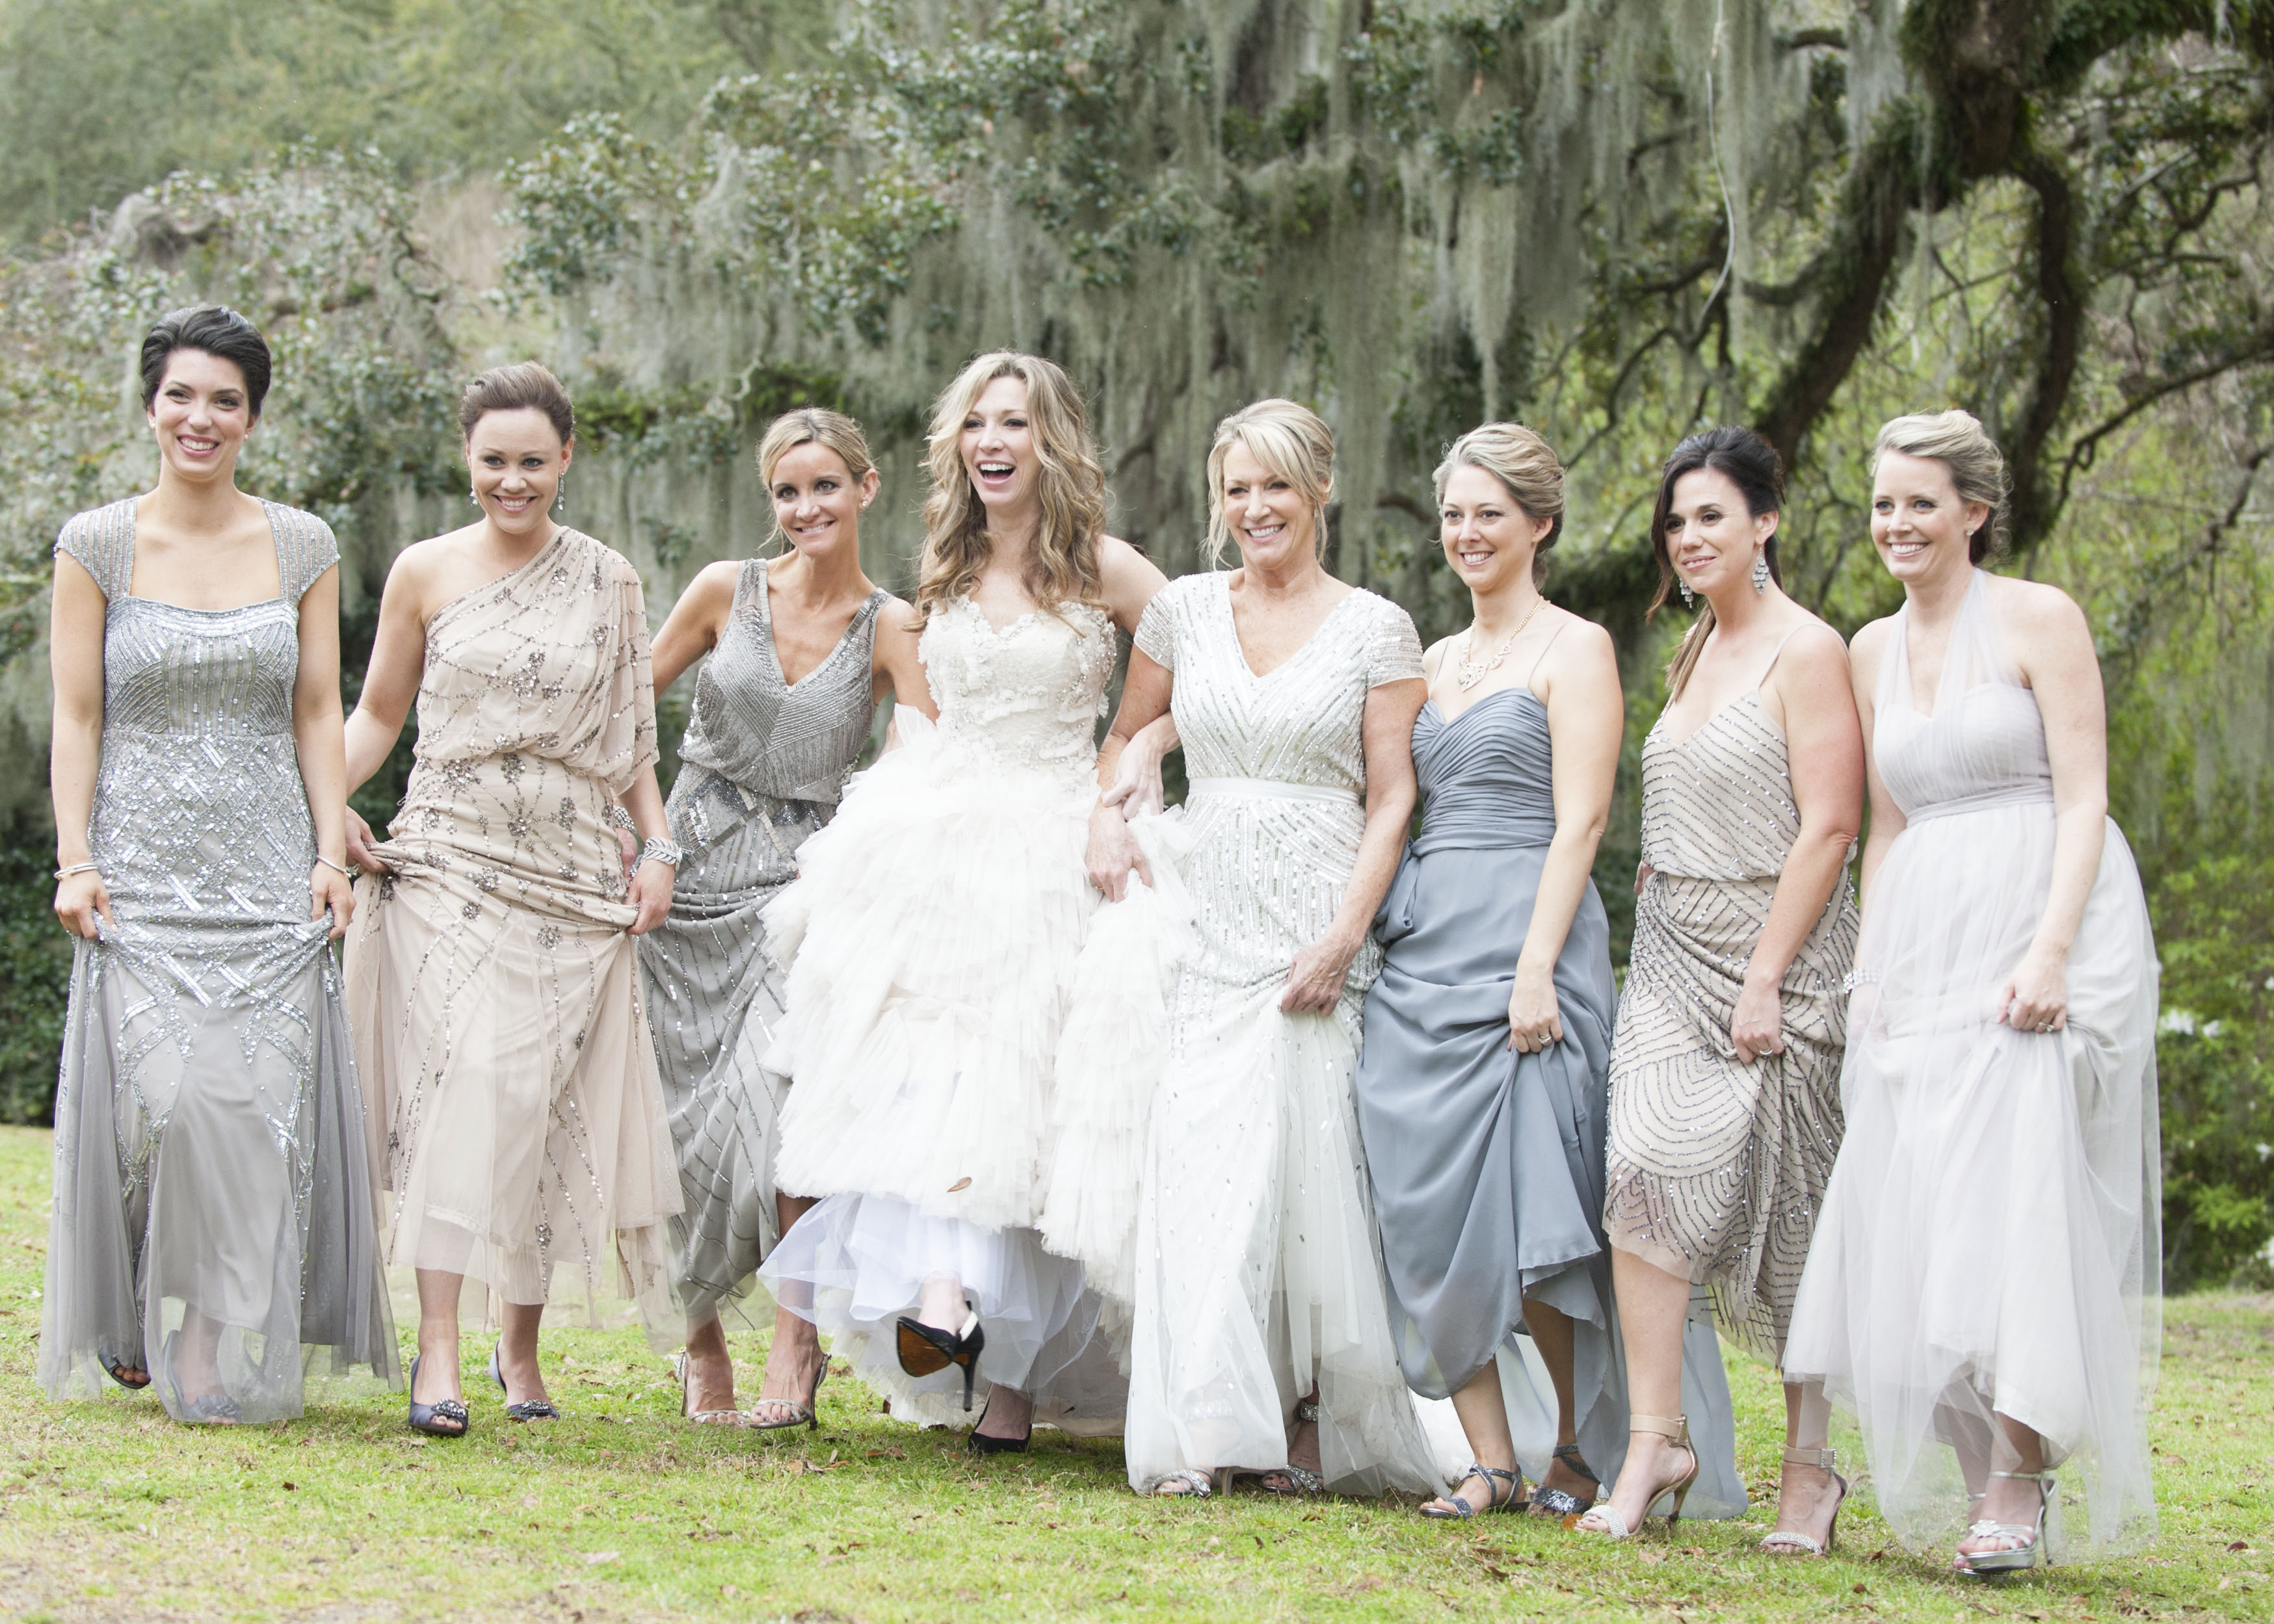 Country Wedding Dresses For Mother Of Groom : Dresses for mother of the bride country wedding